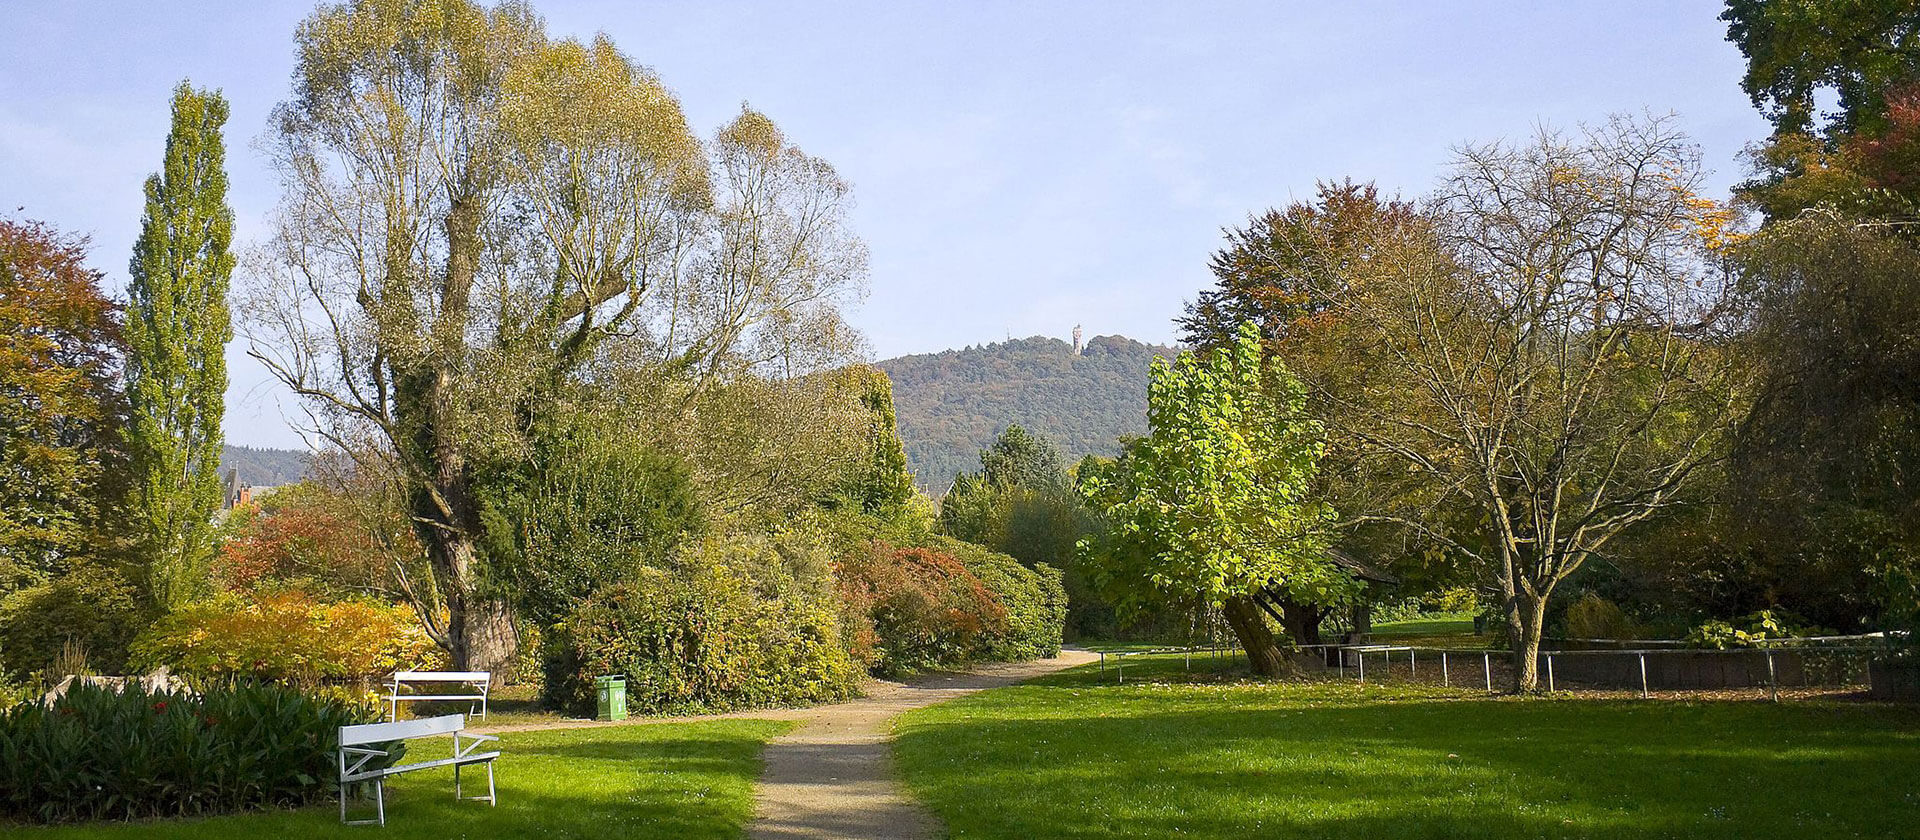 Alter Botanischer Garten Marburg, Credit Willow via Wikimedia